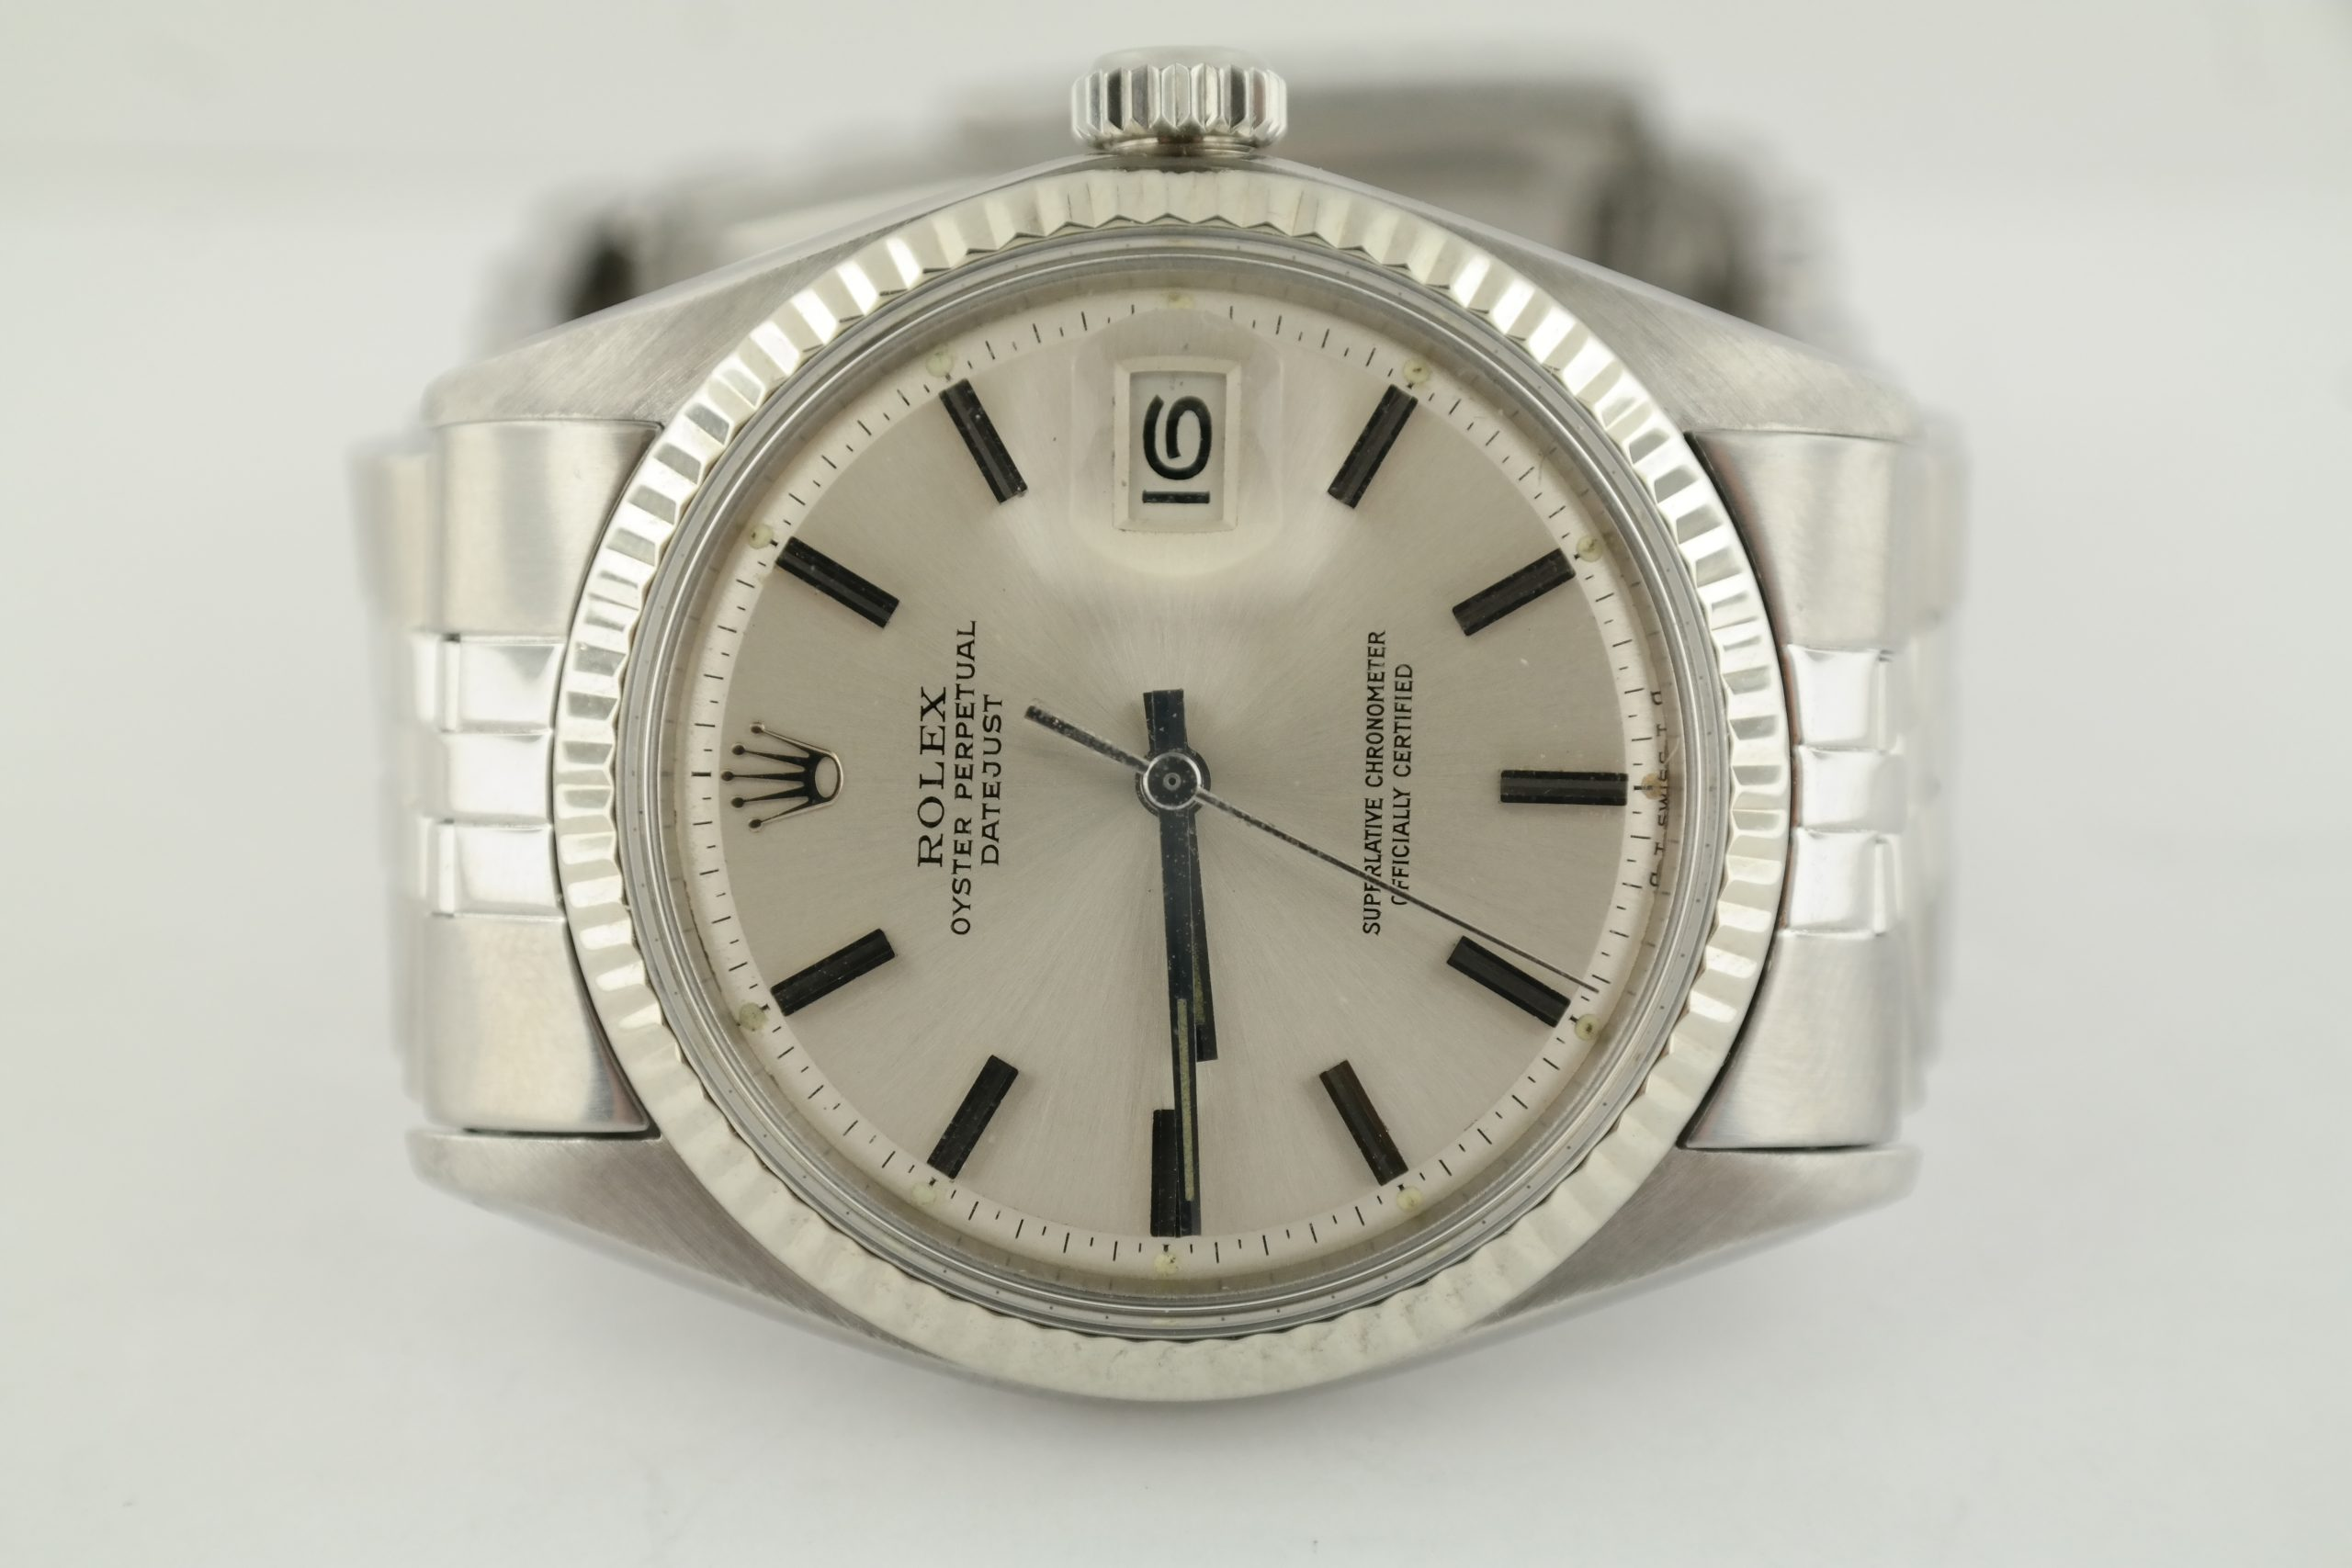 Rolex Datejust 1601 Silver Dial Jubilee Band White Gold Fluted Bezel Circa 1971